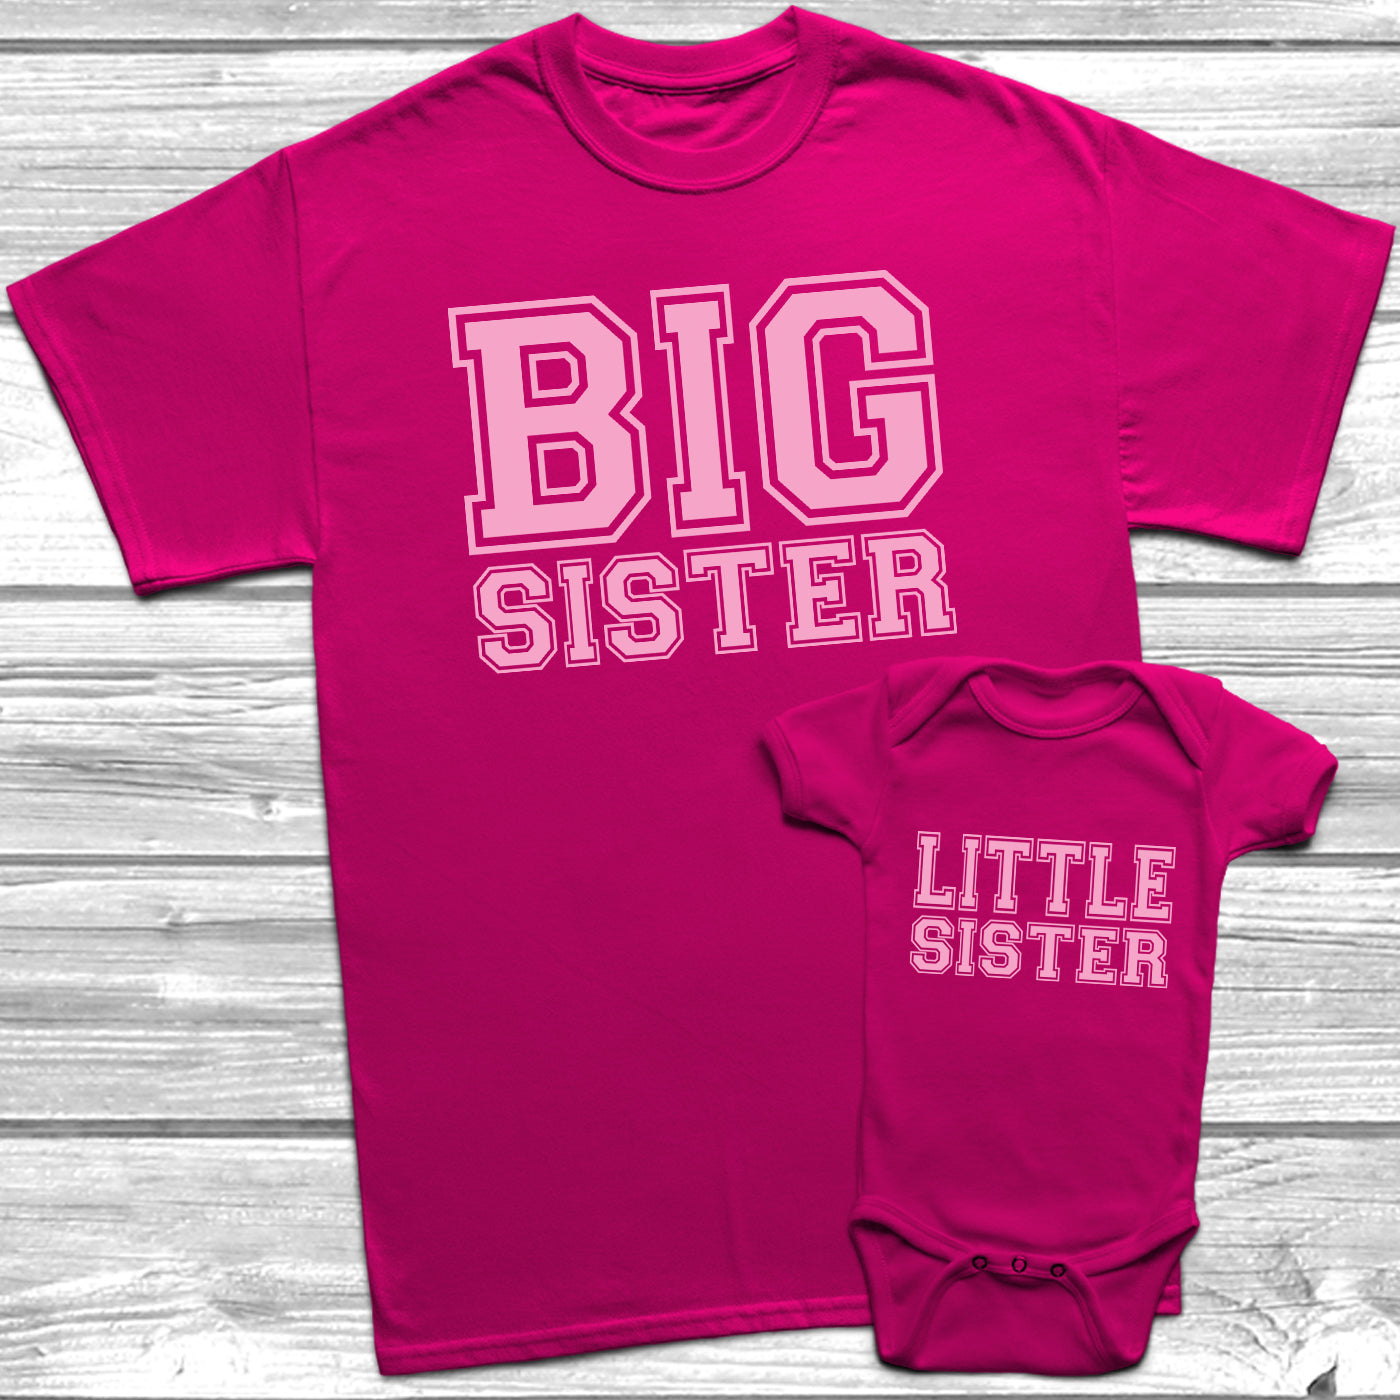 Big Sister Little Sister T Shirt Kids Baby Grow Sisters Outfits Ebay